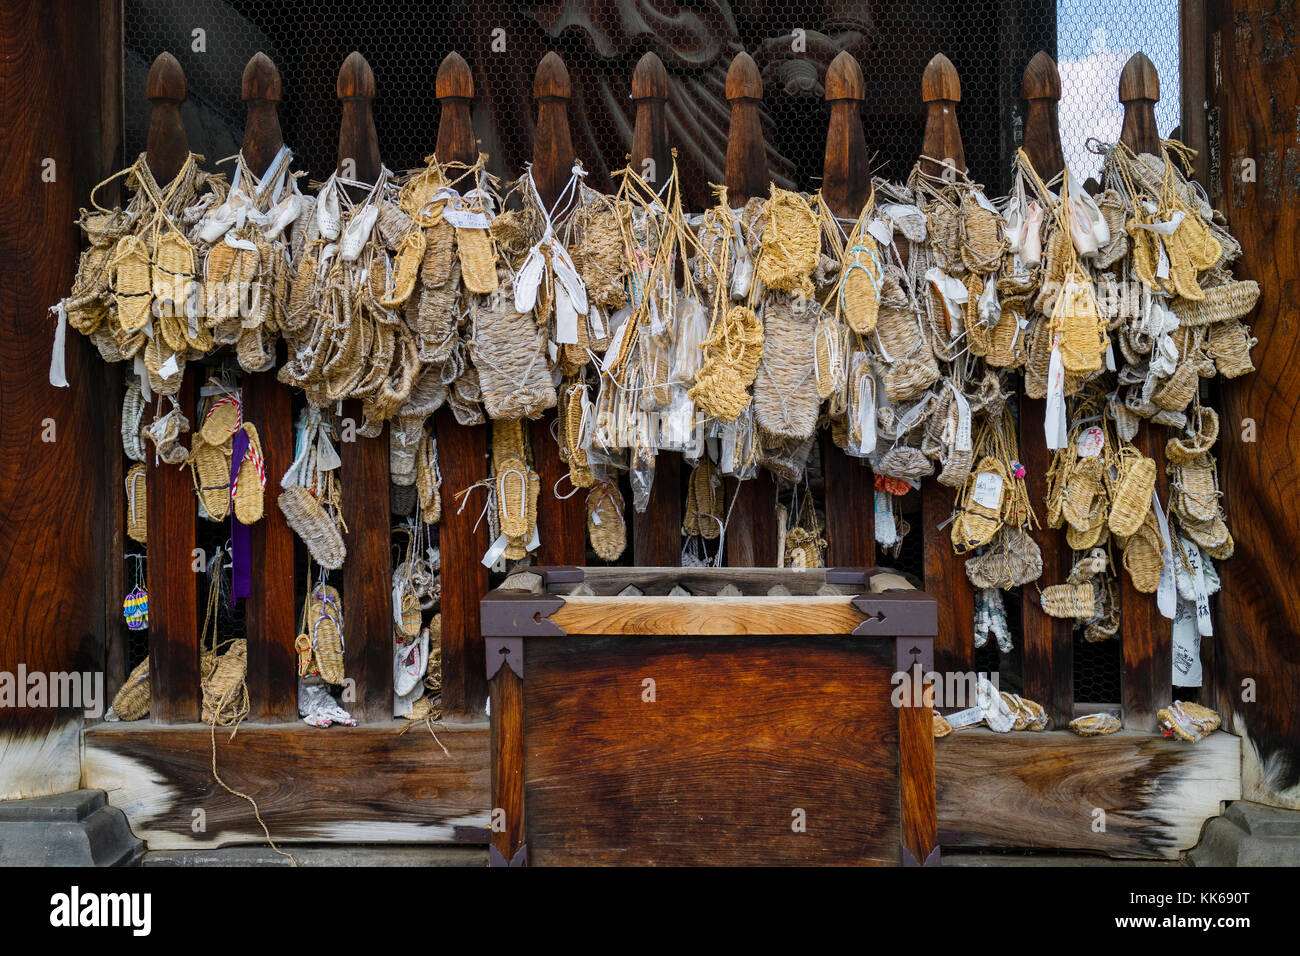 Nagano - Japan, June 3, 2017:  Waraji or traditional straw sandals hung as offerings on the Niomon Gate to the important - Stock Image